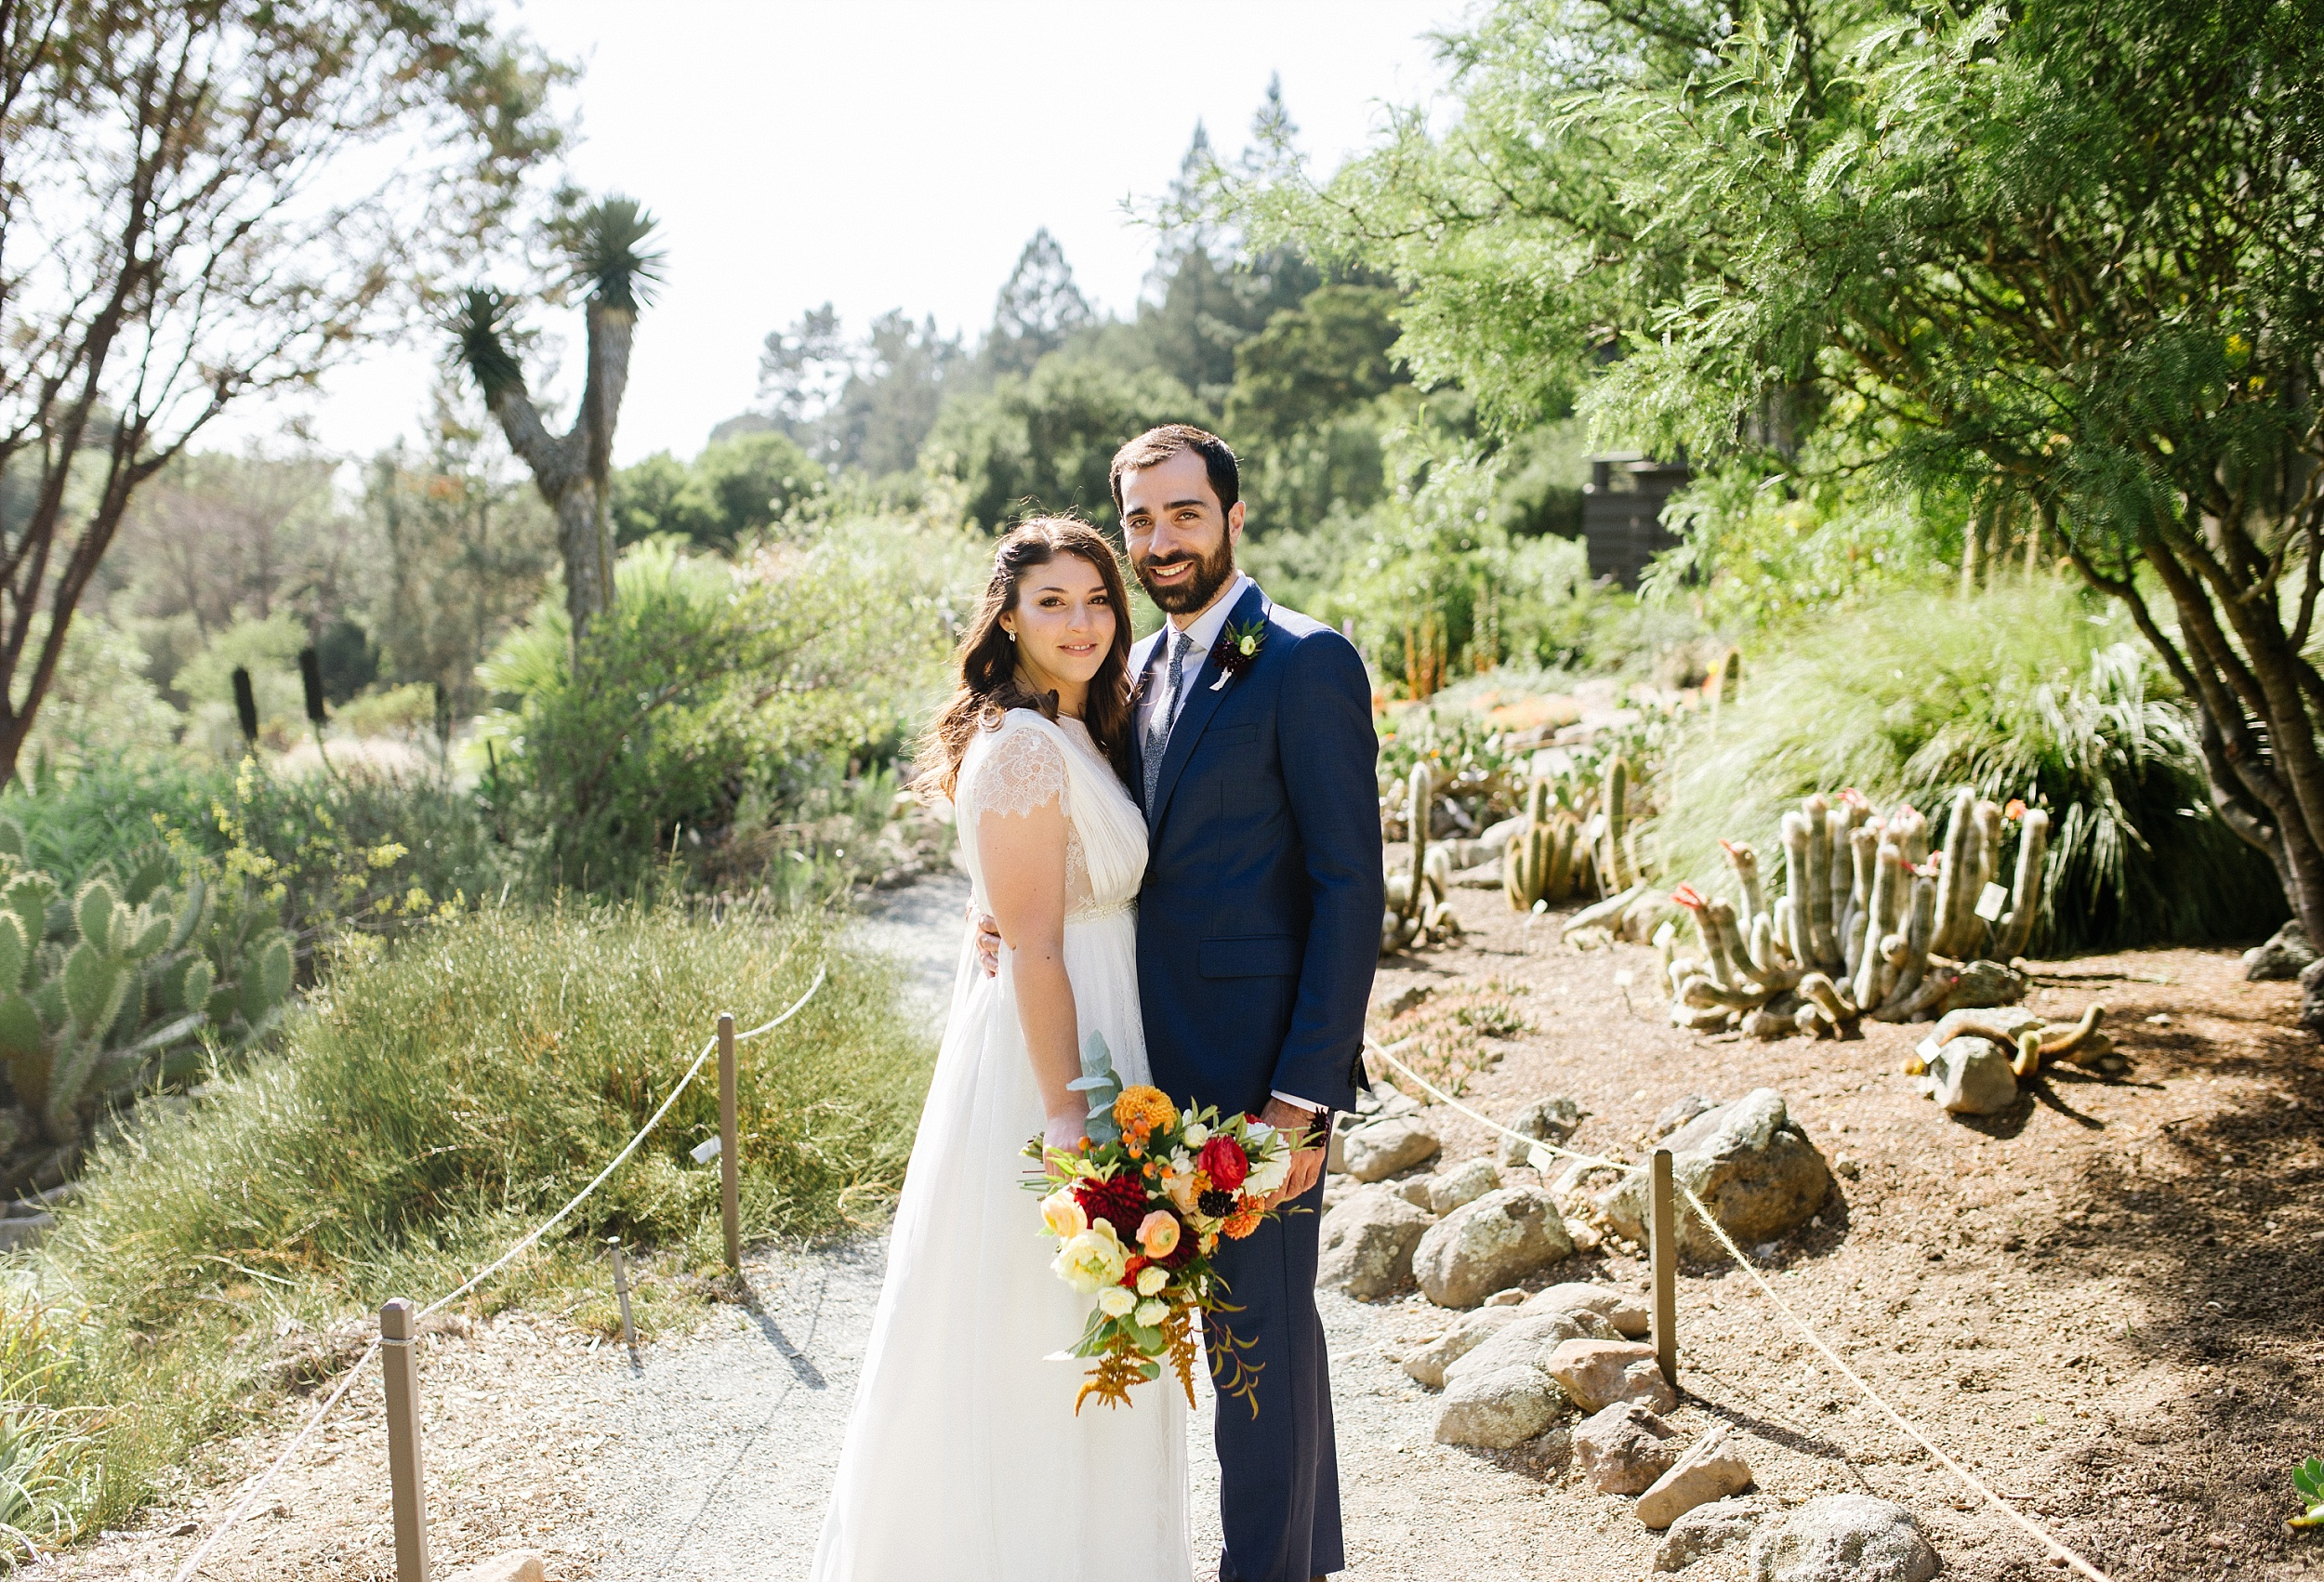 noahhannah_redwoods_botanical_wedding_berkeley_cdp_0008.jpg